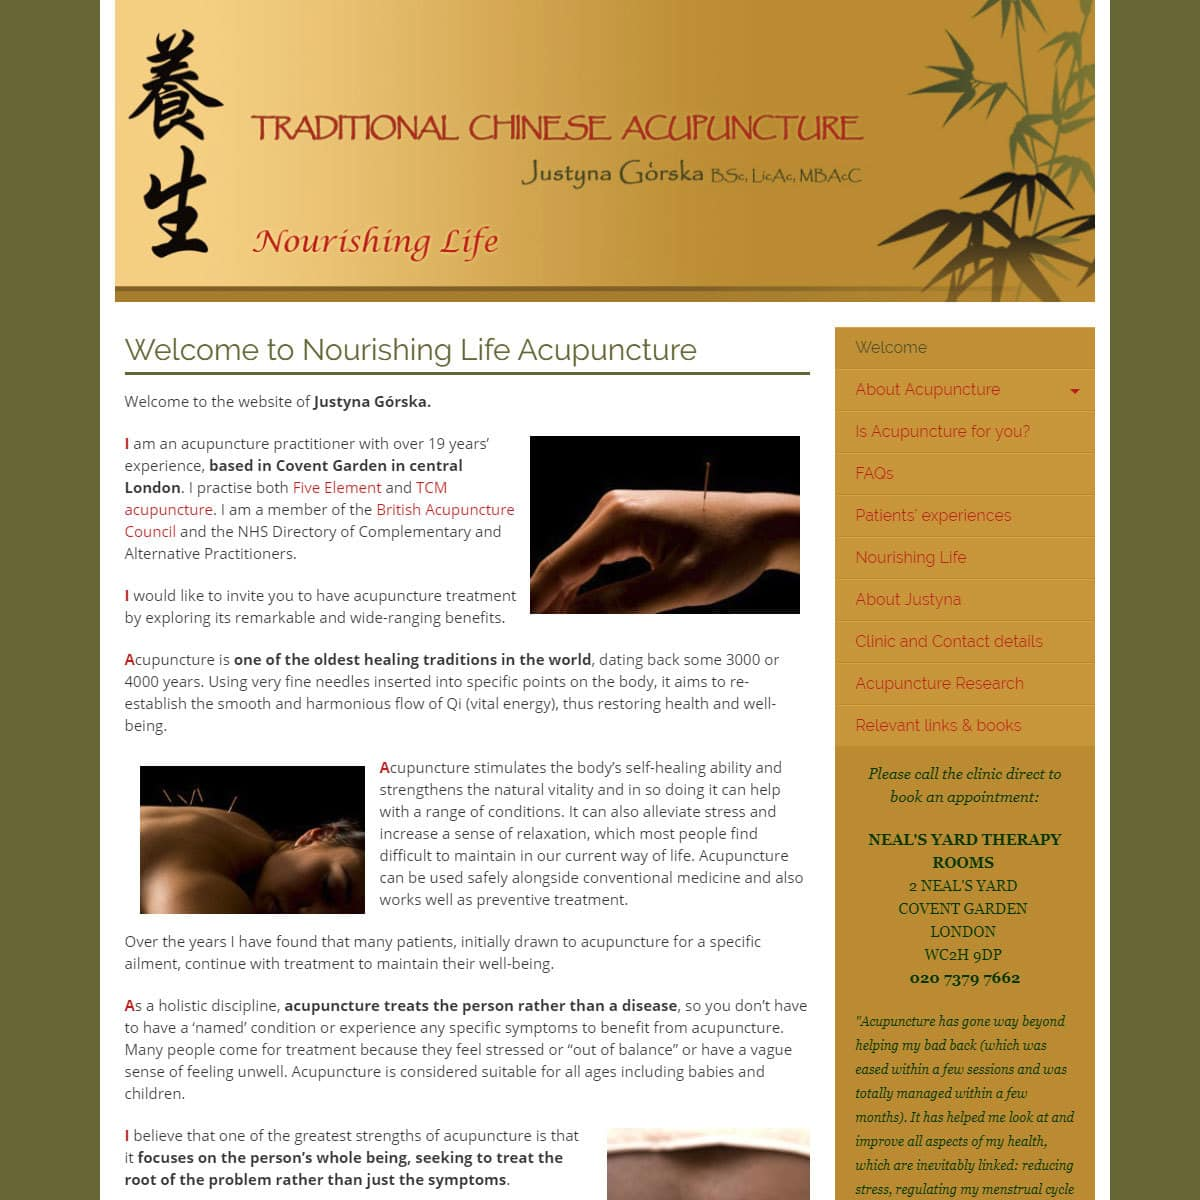 nourishinglifeacupuncture